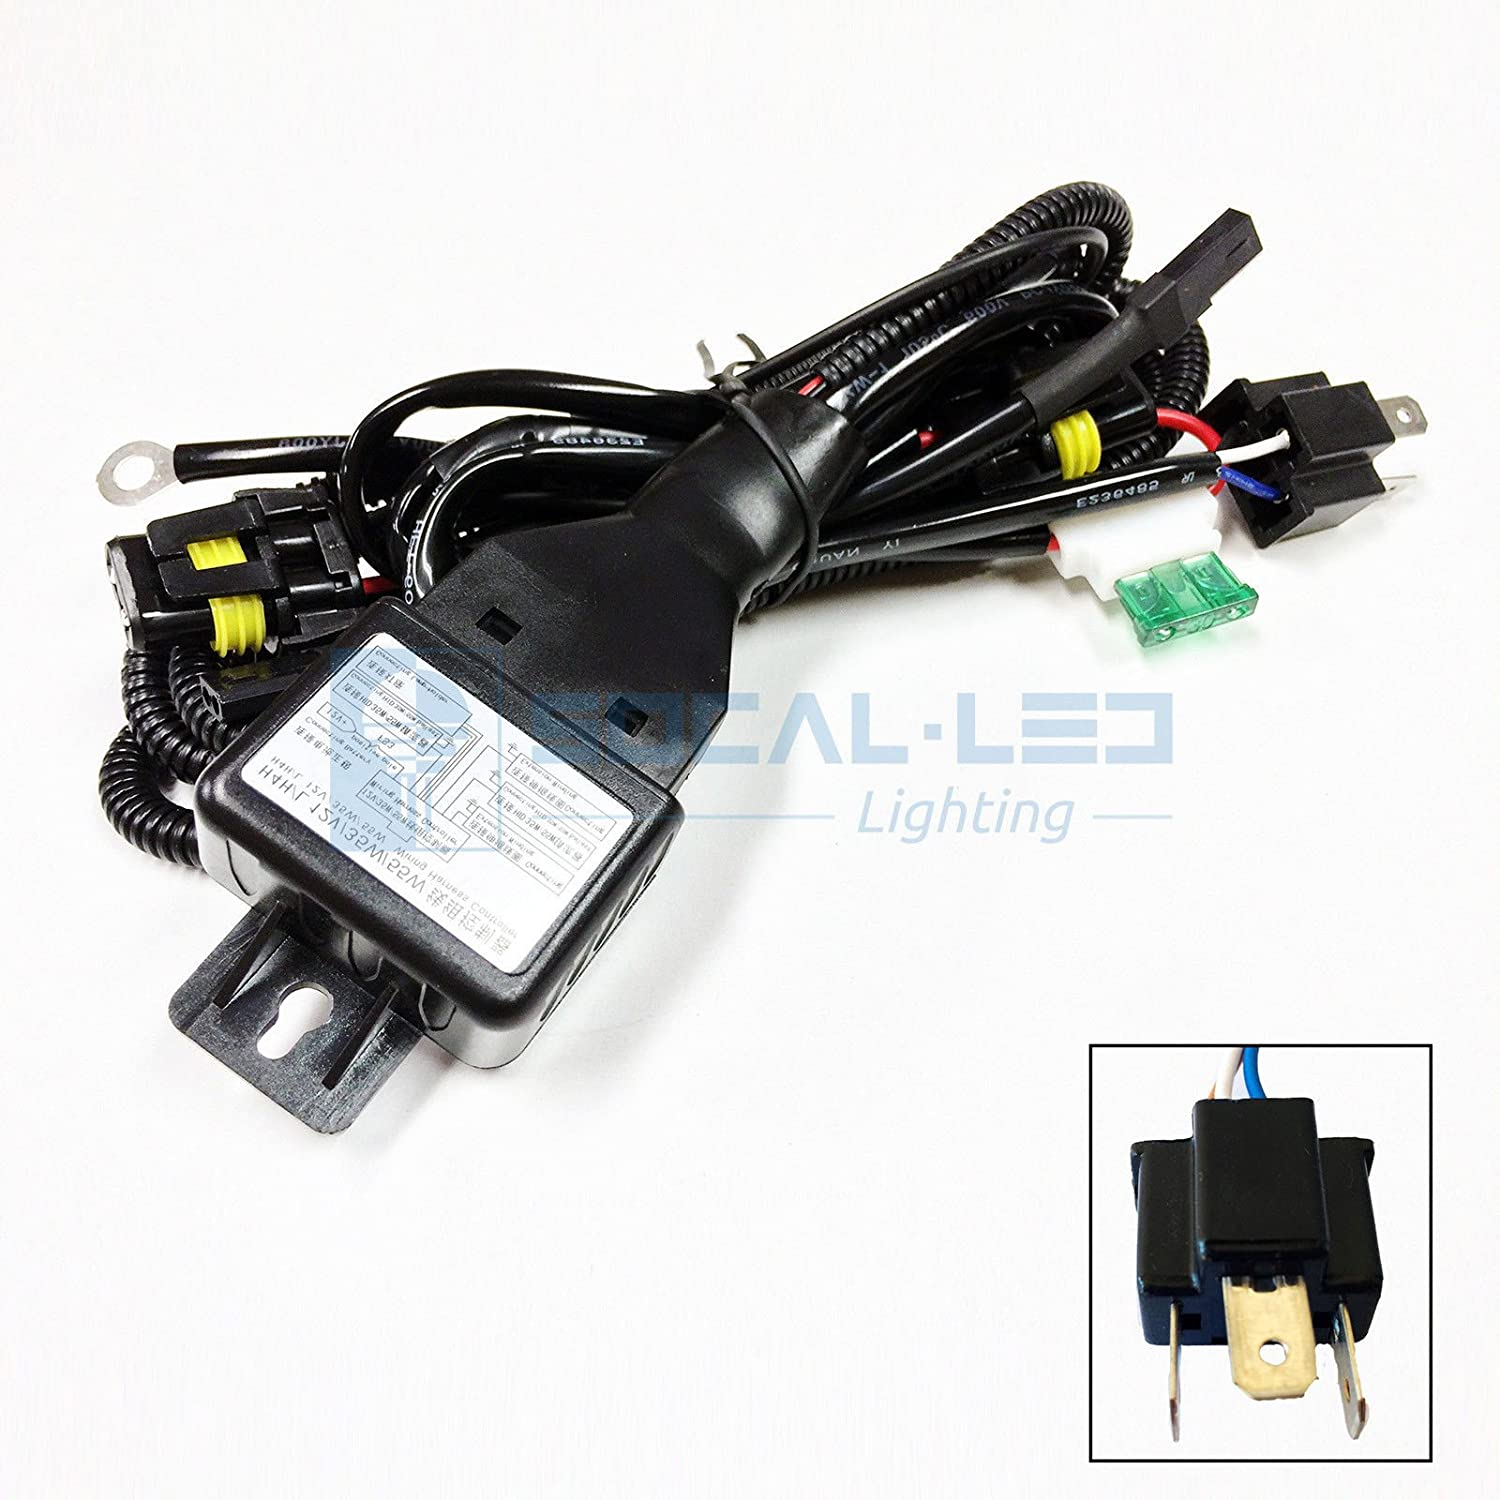 81lX2OBNA6L._SL1500_ amazon com o nex hid relay harness 9007 (hb5 9004) 12v 35w 55w bi hid 12v wiring harness controller at gsmportal.co